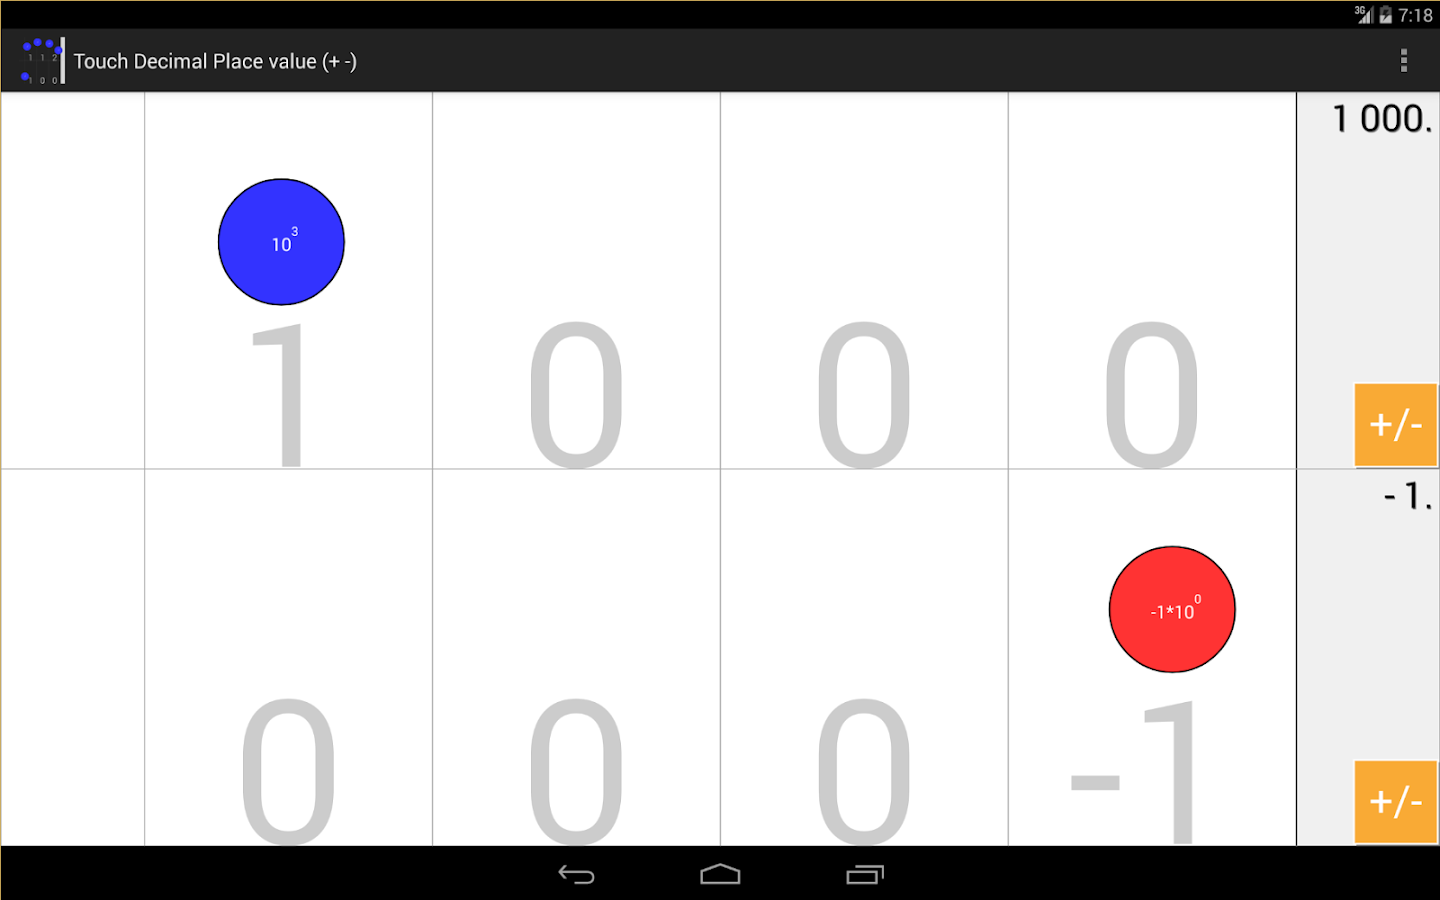 Touch decimals Place value ±- screenshot